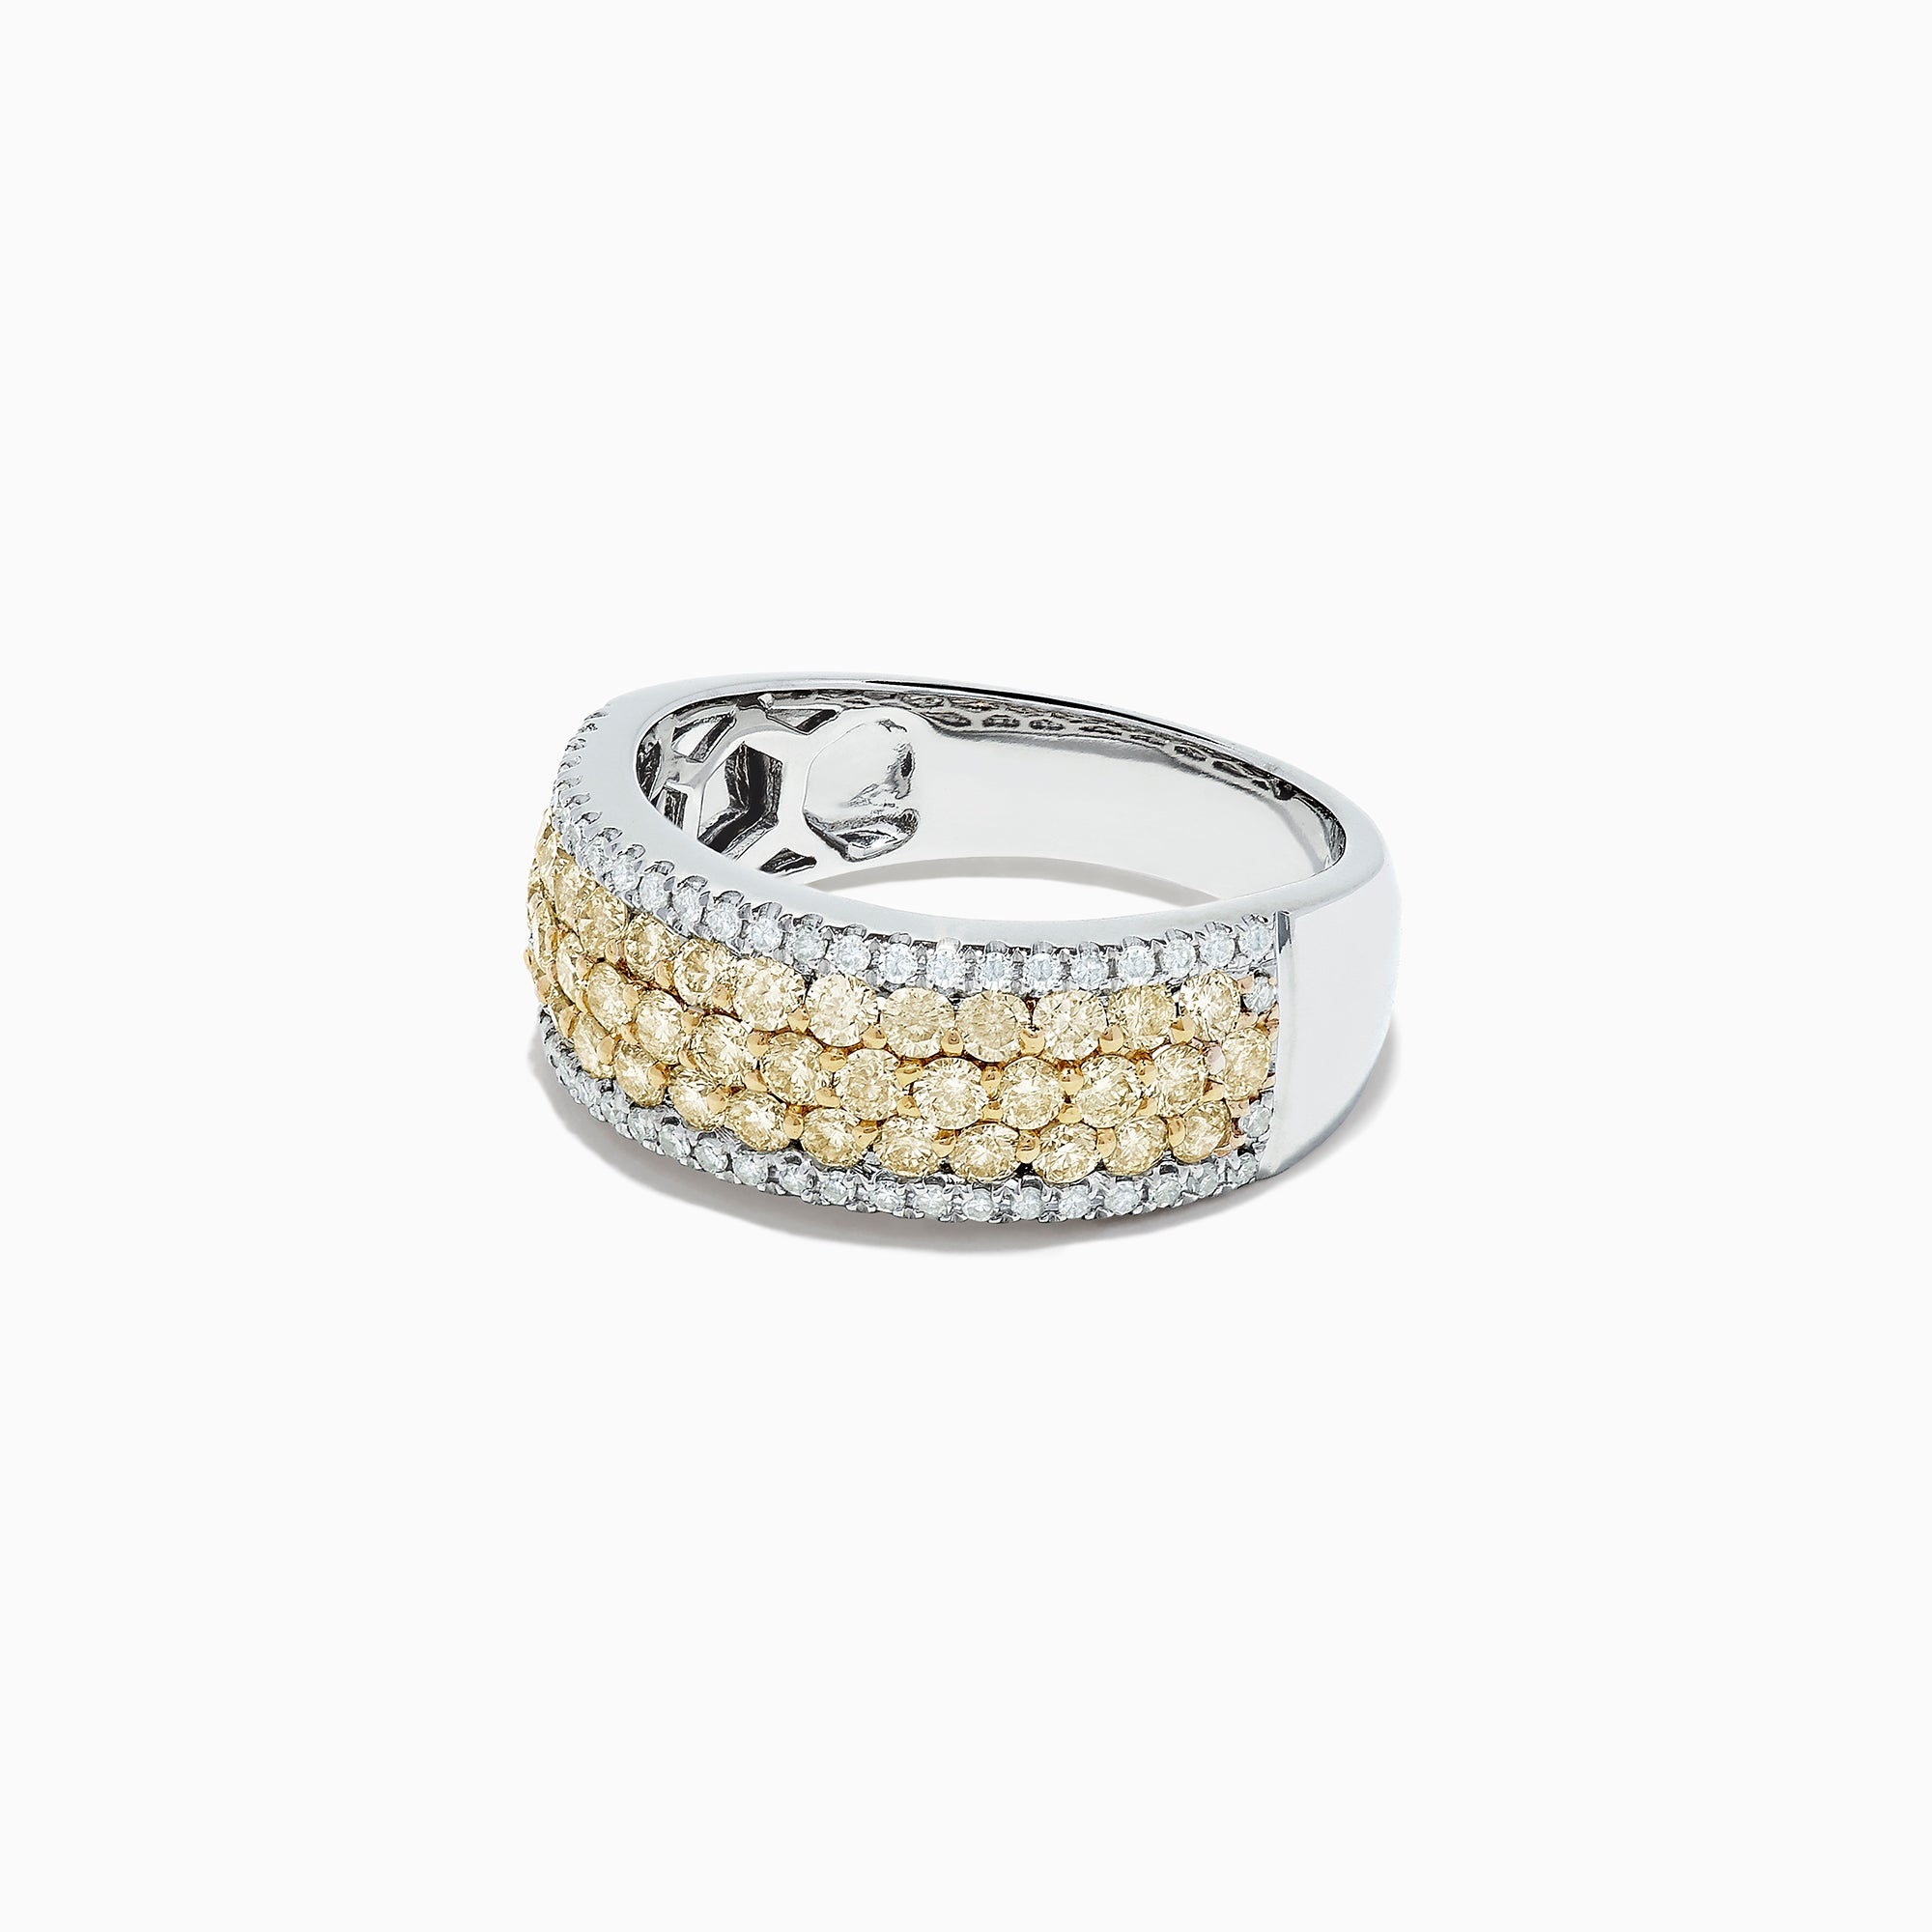 Effy Canare 14K Two Tone Gold Yellow and White Diamond Ring, 1.26 TCW